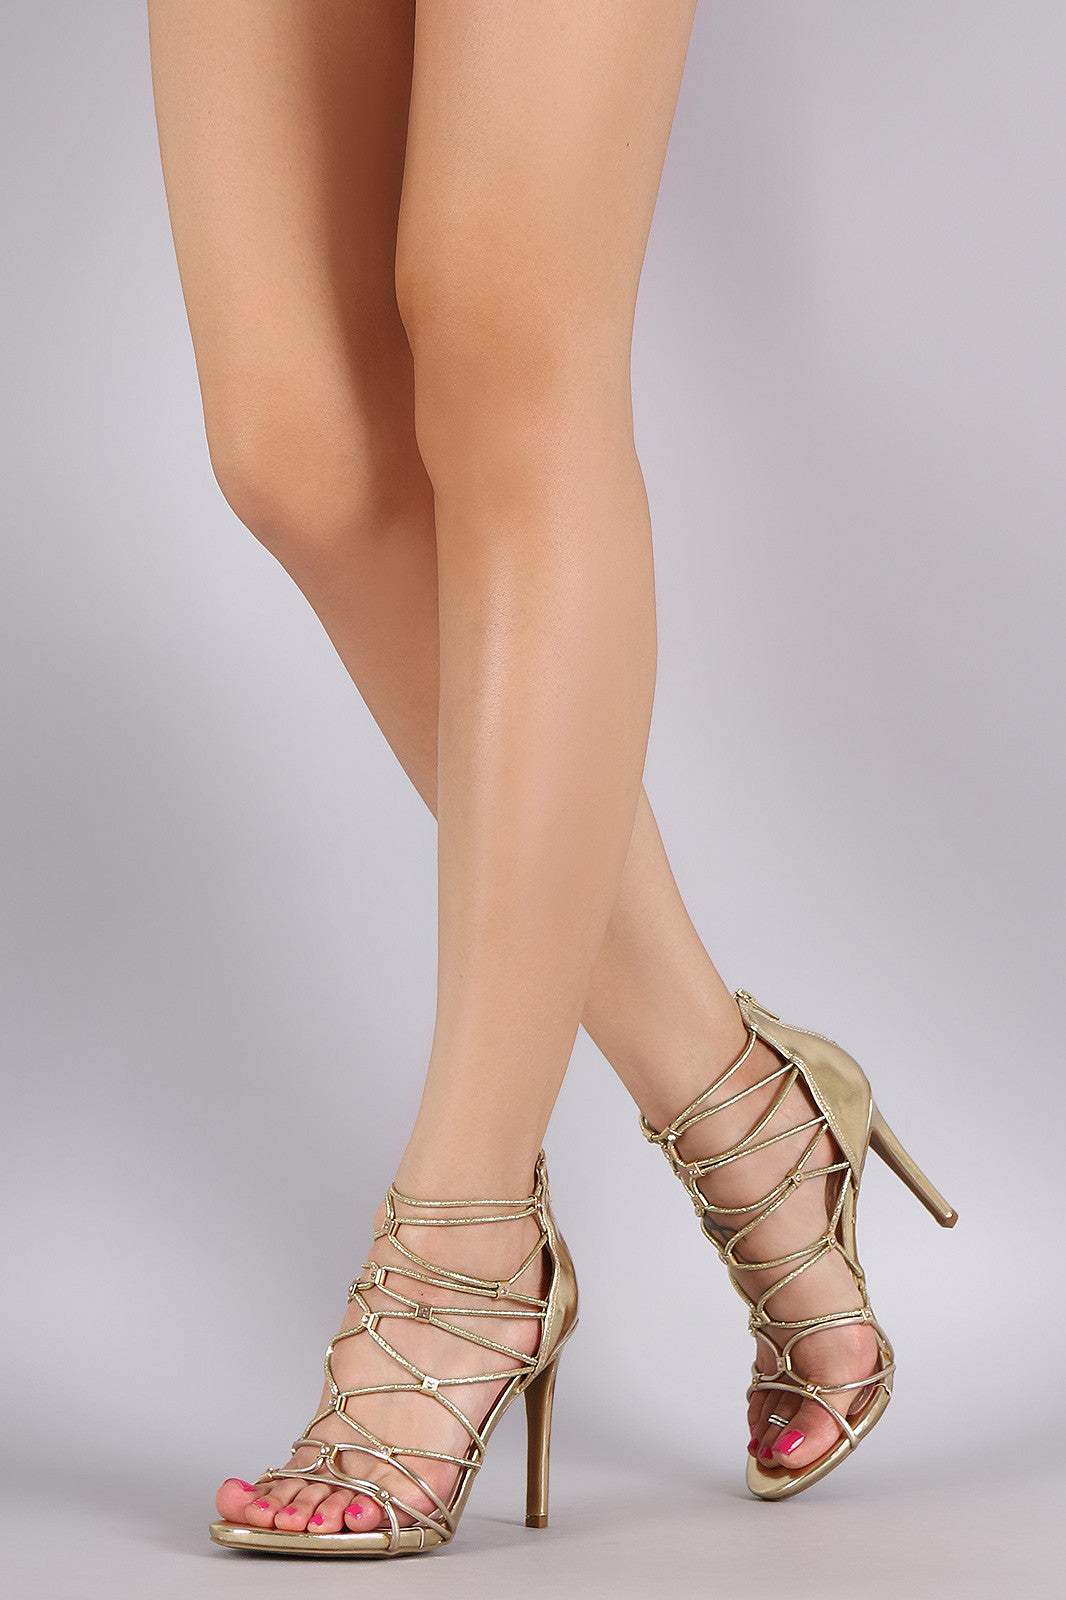 Bamboo Metallic Rhinestone Strappy Stiletto Heel - Thick 'N' Curvy Shop - 1